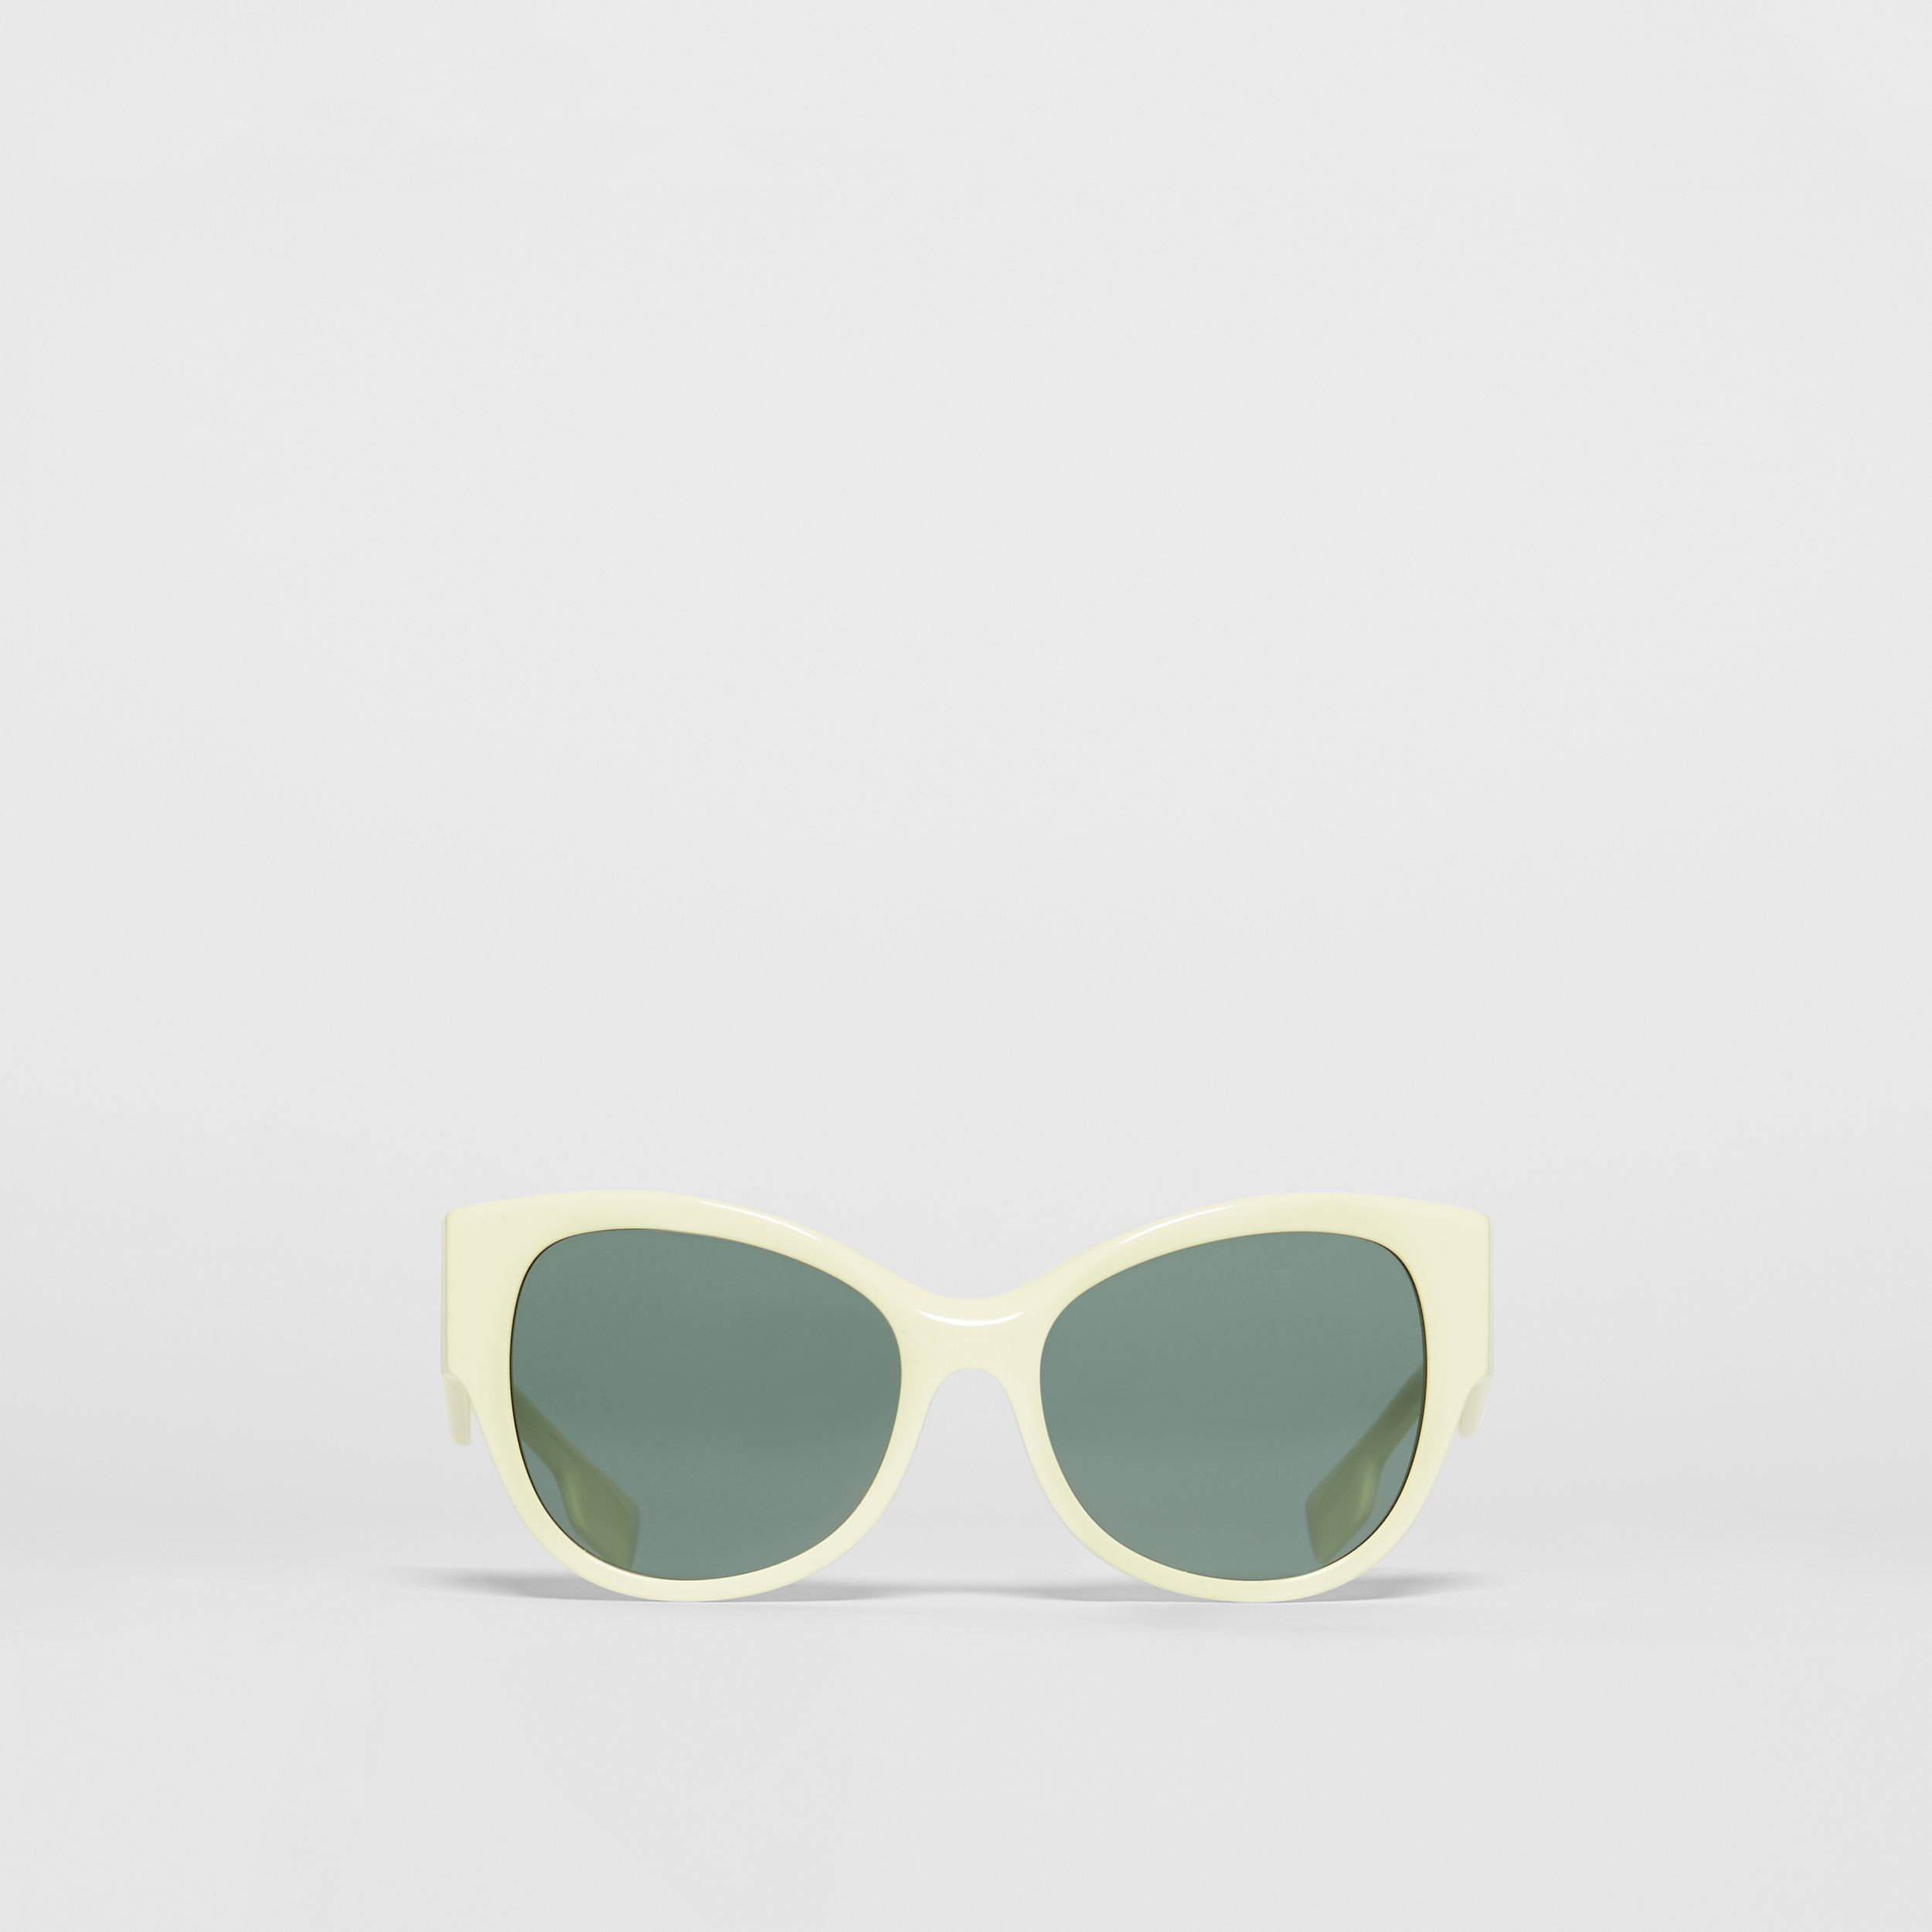 Butterfly Frame Sunglasses in Pistachio - Women | Burberry - 1